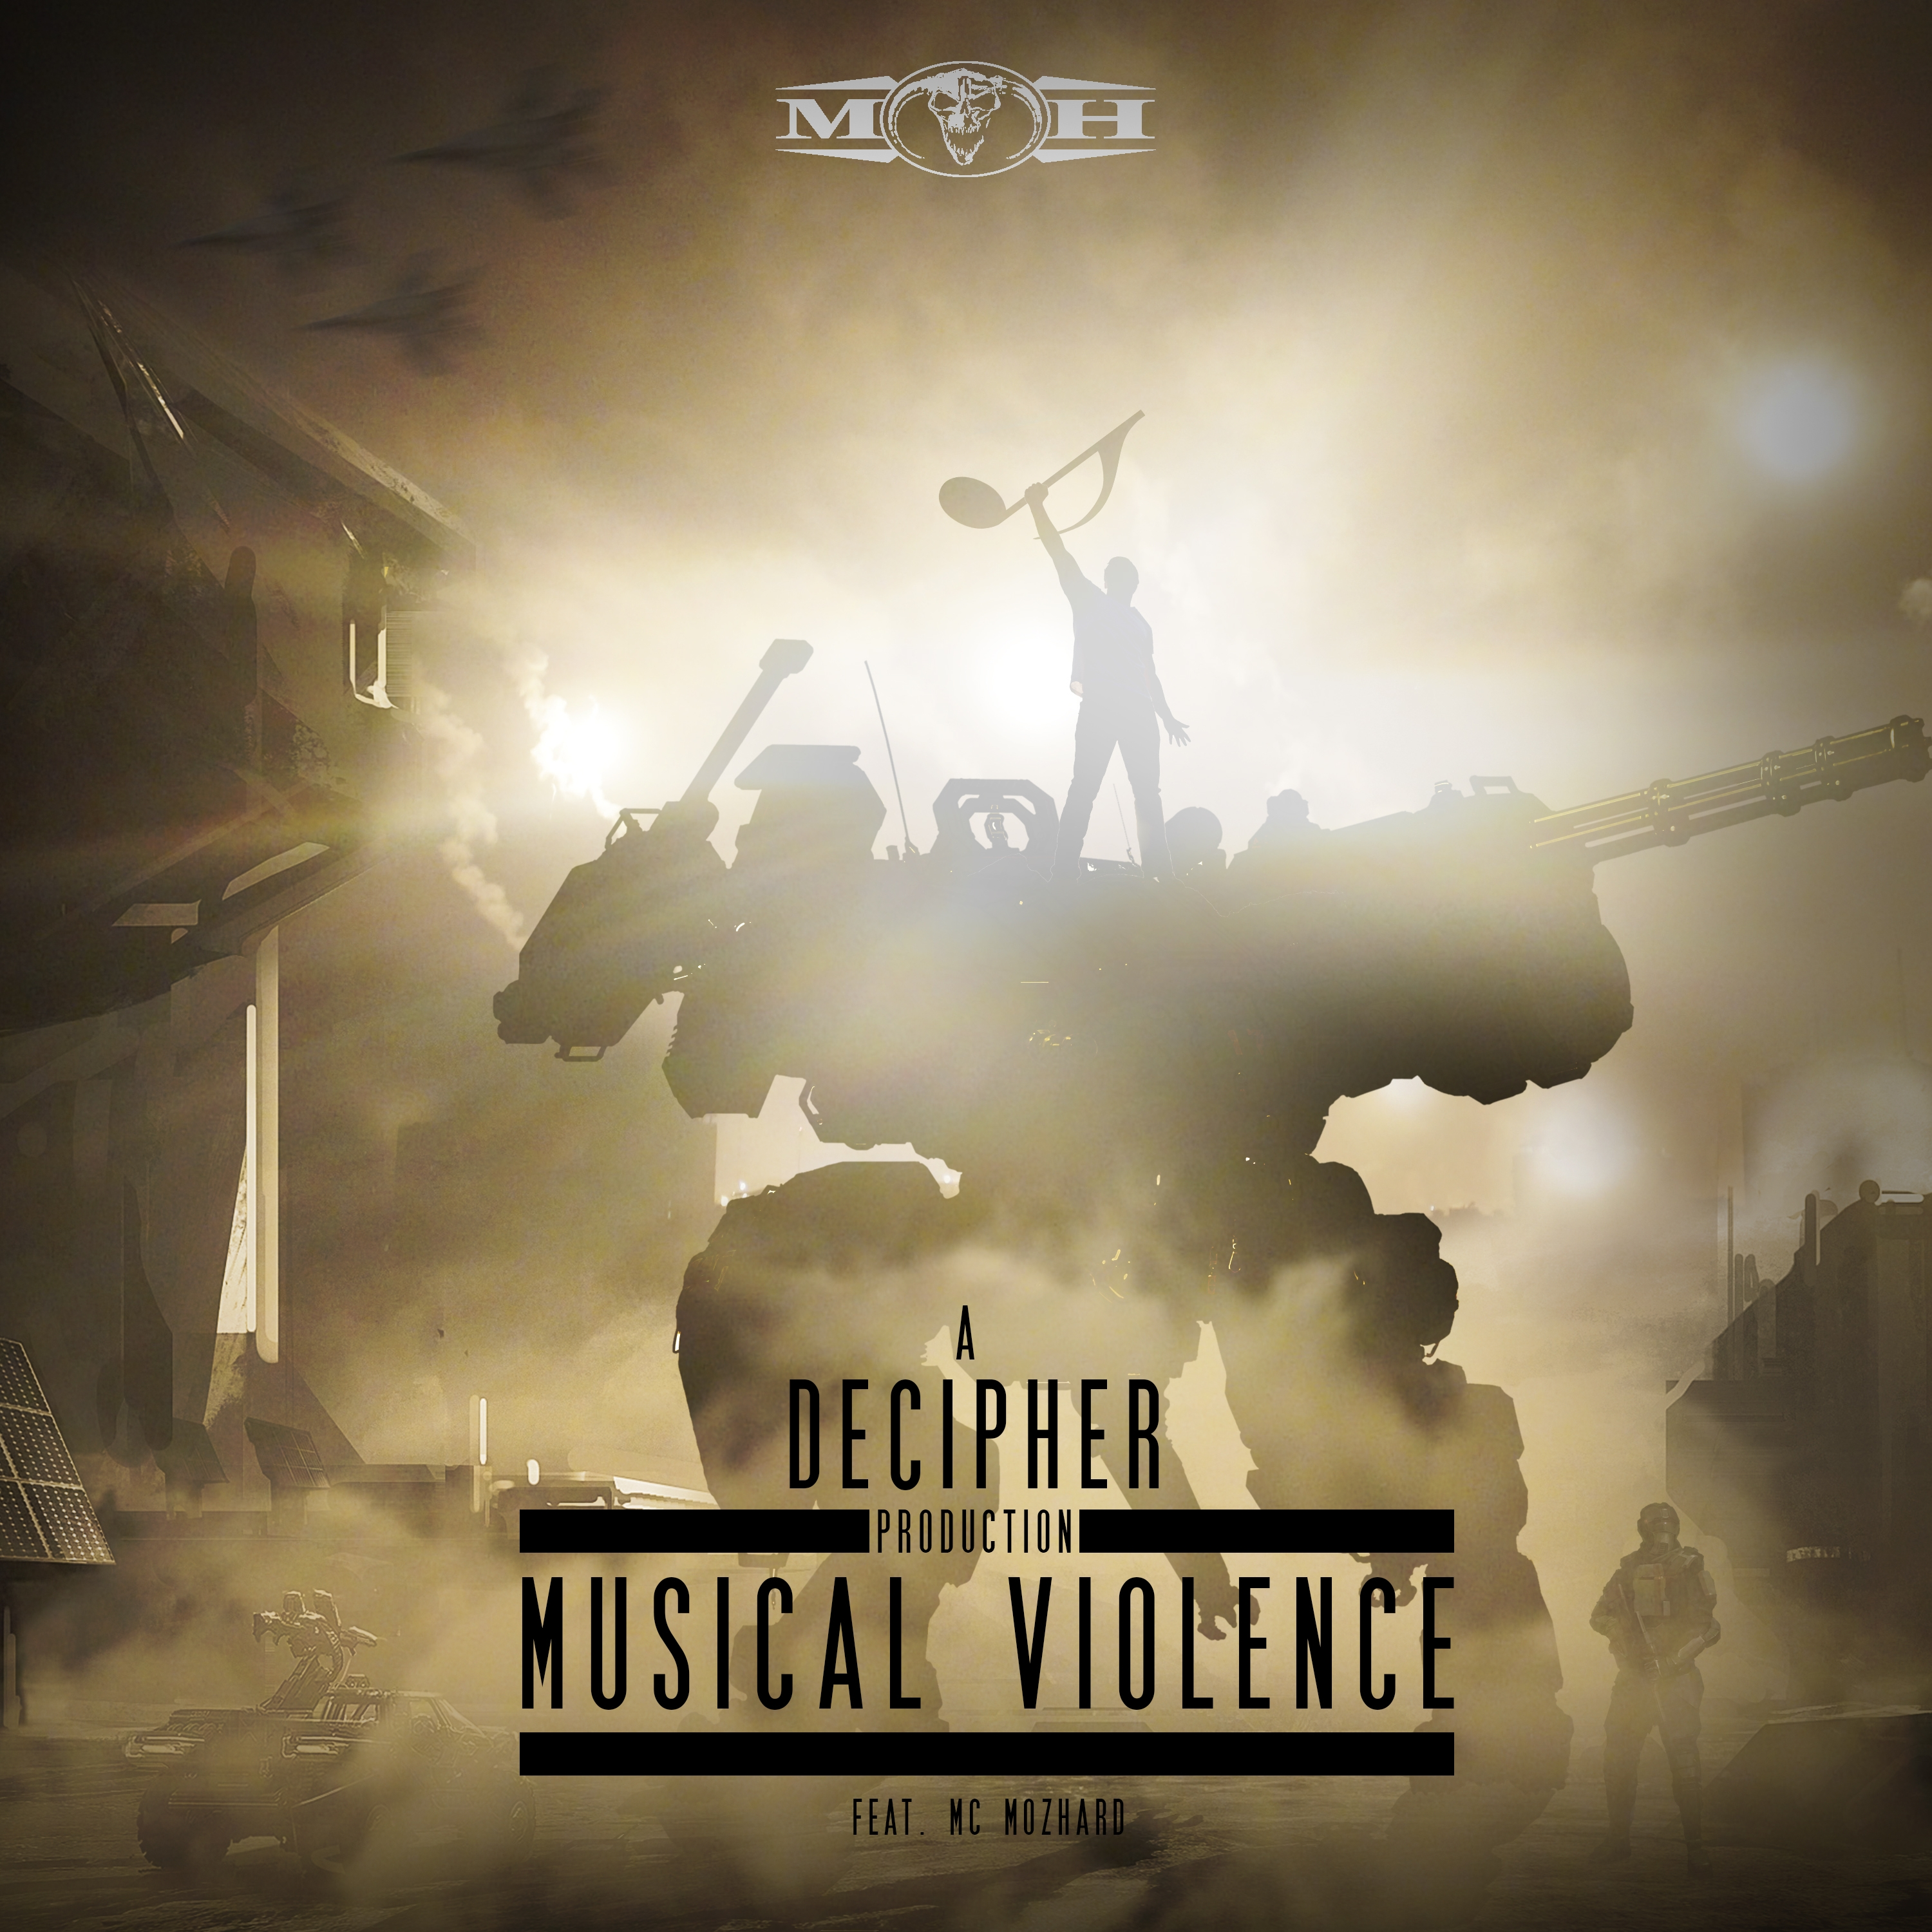 mudic and violence Does music and lyrical content influence human understanding the nature and extent of the influence of violence in music may be the first step towards better.